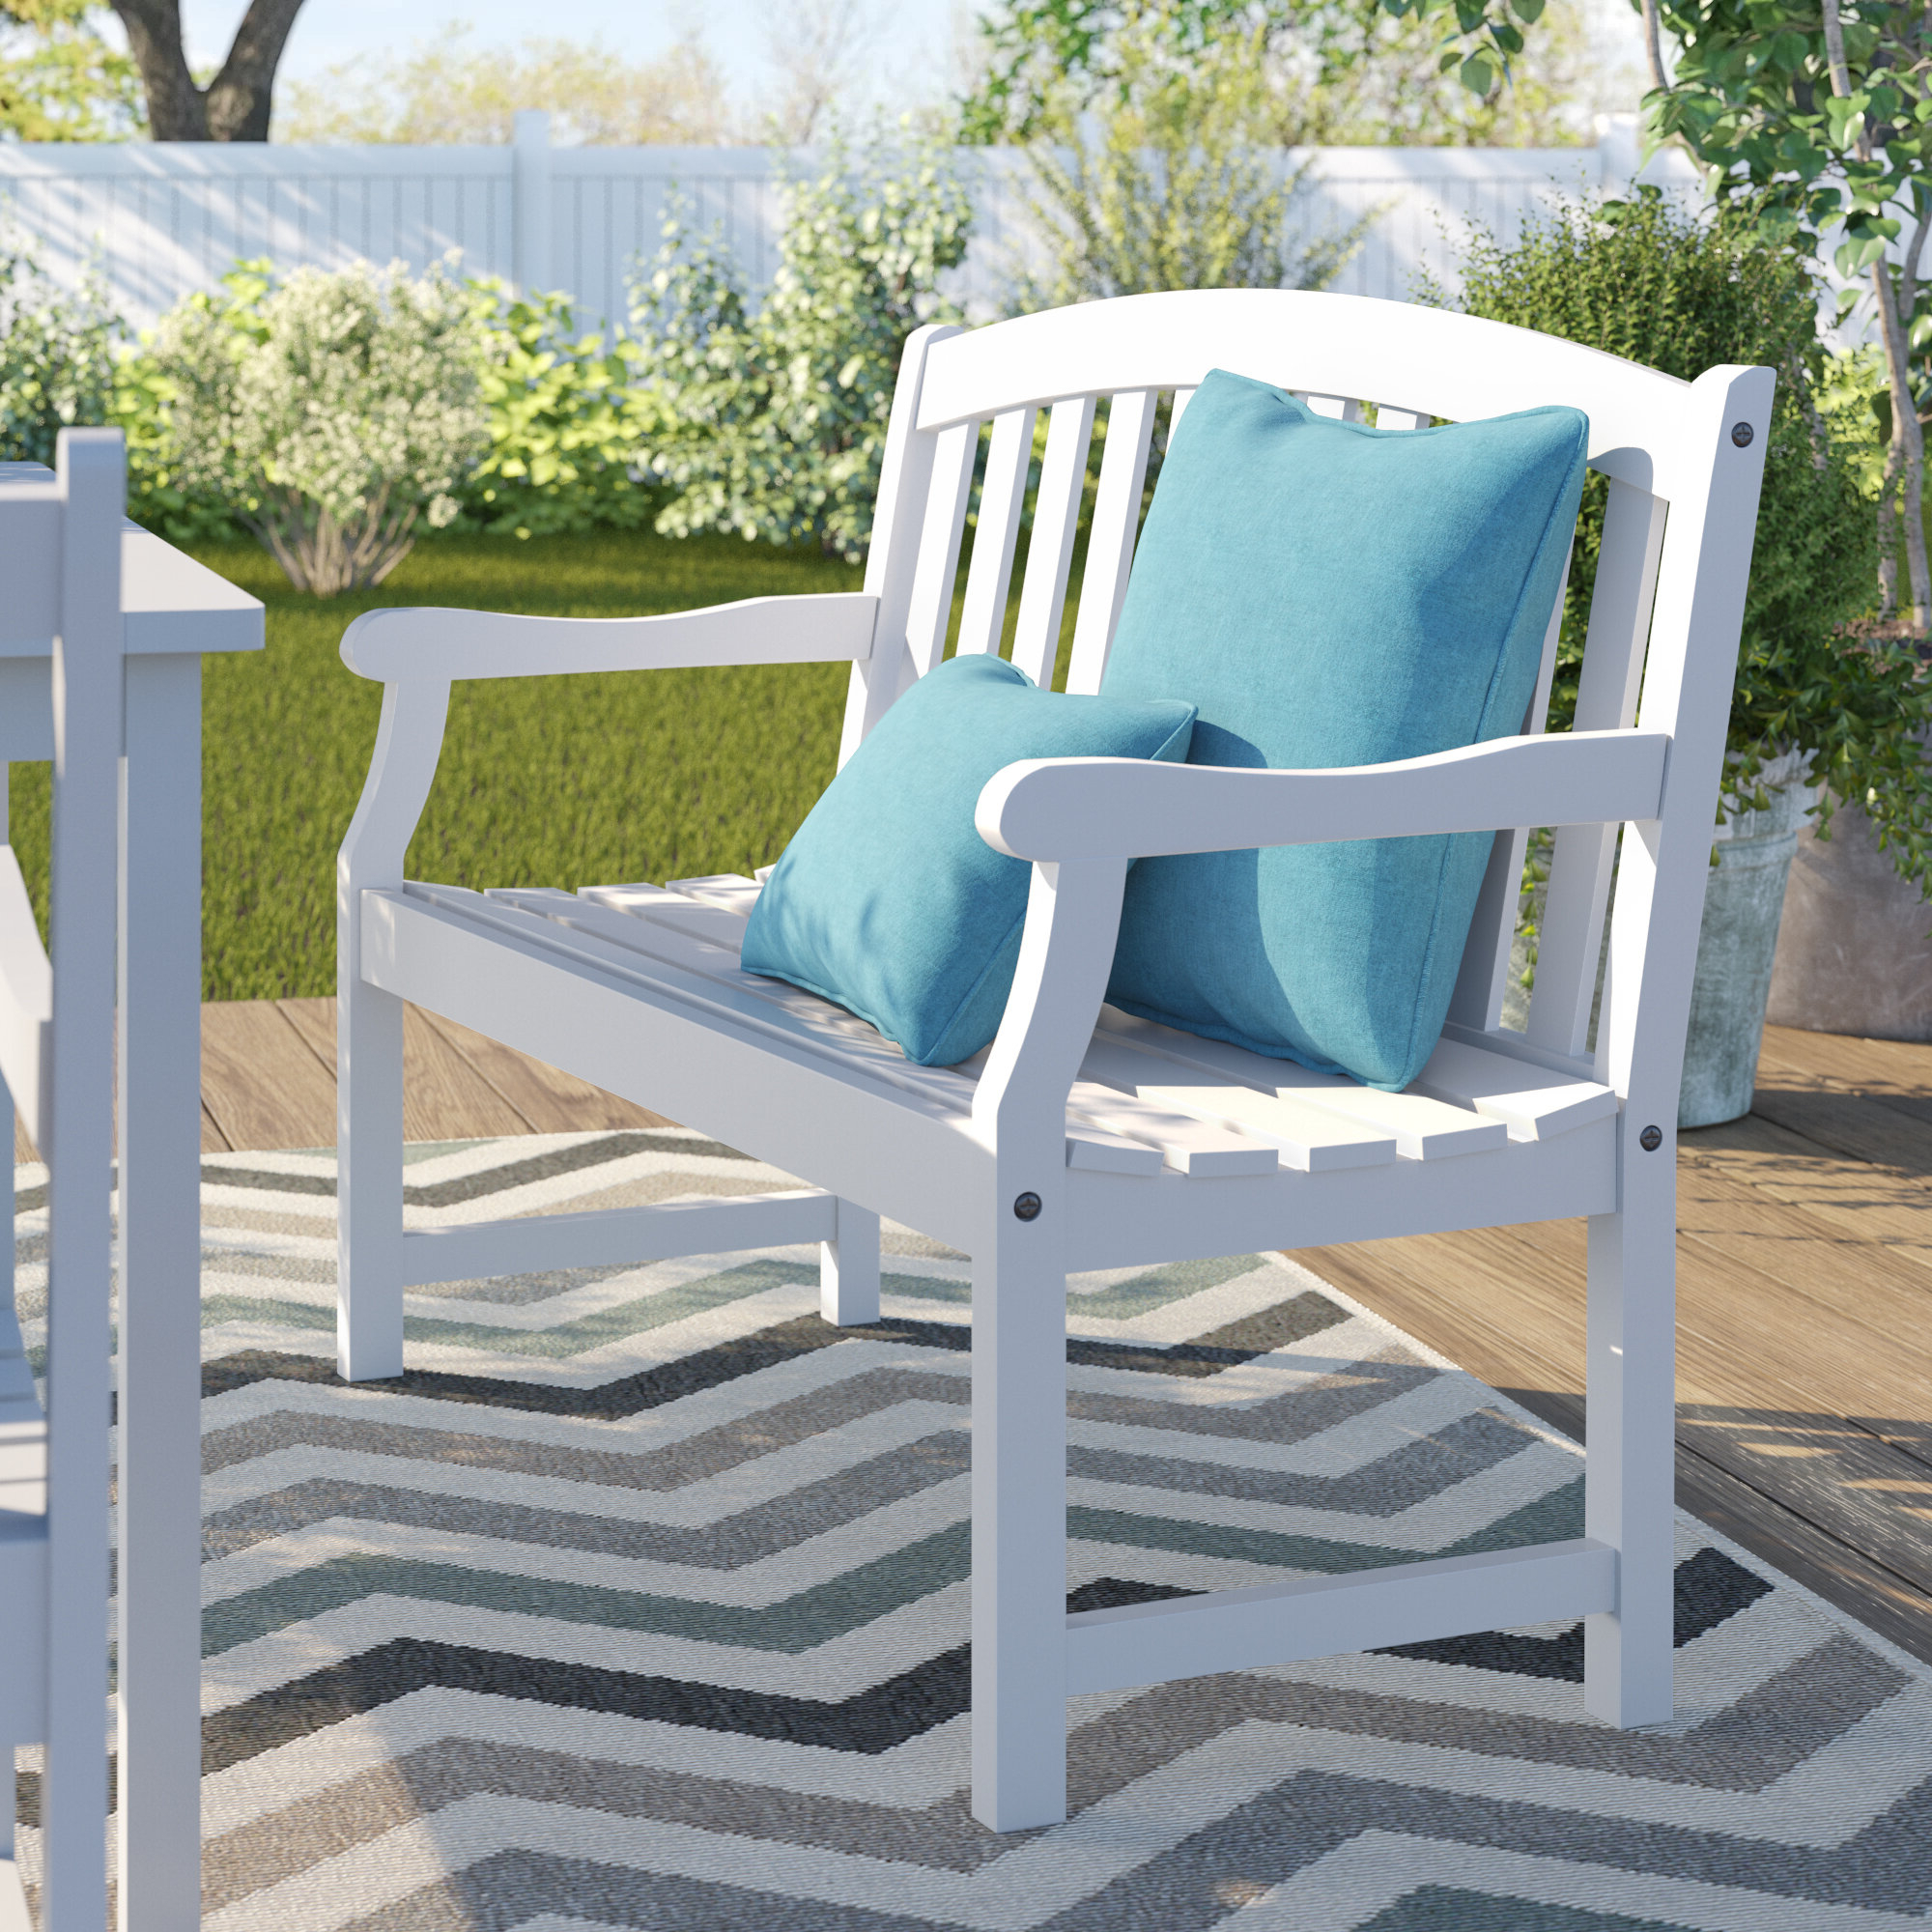 Shelbie Wooden Garden Bench With Widely Used Ahana Wooden Garden Benches (View 11 of 30)